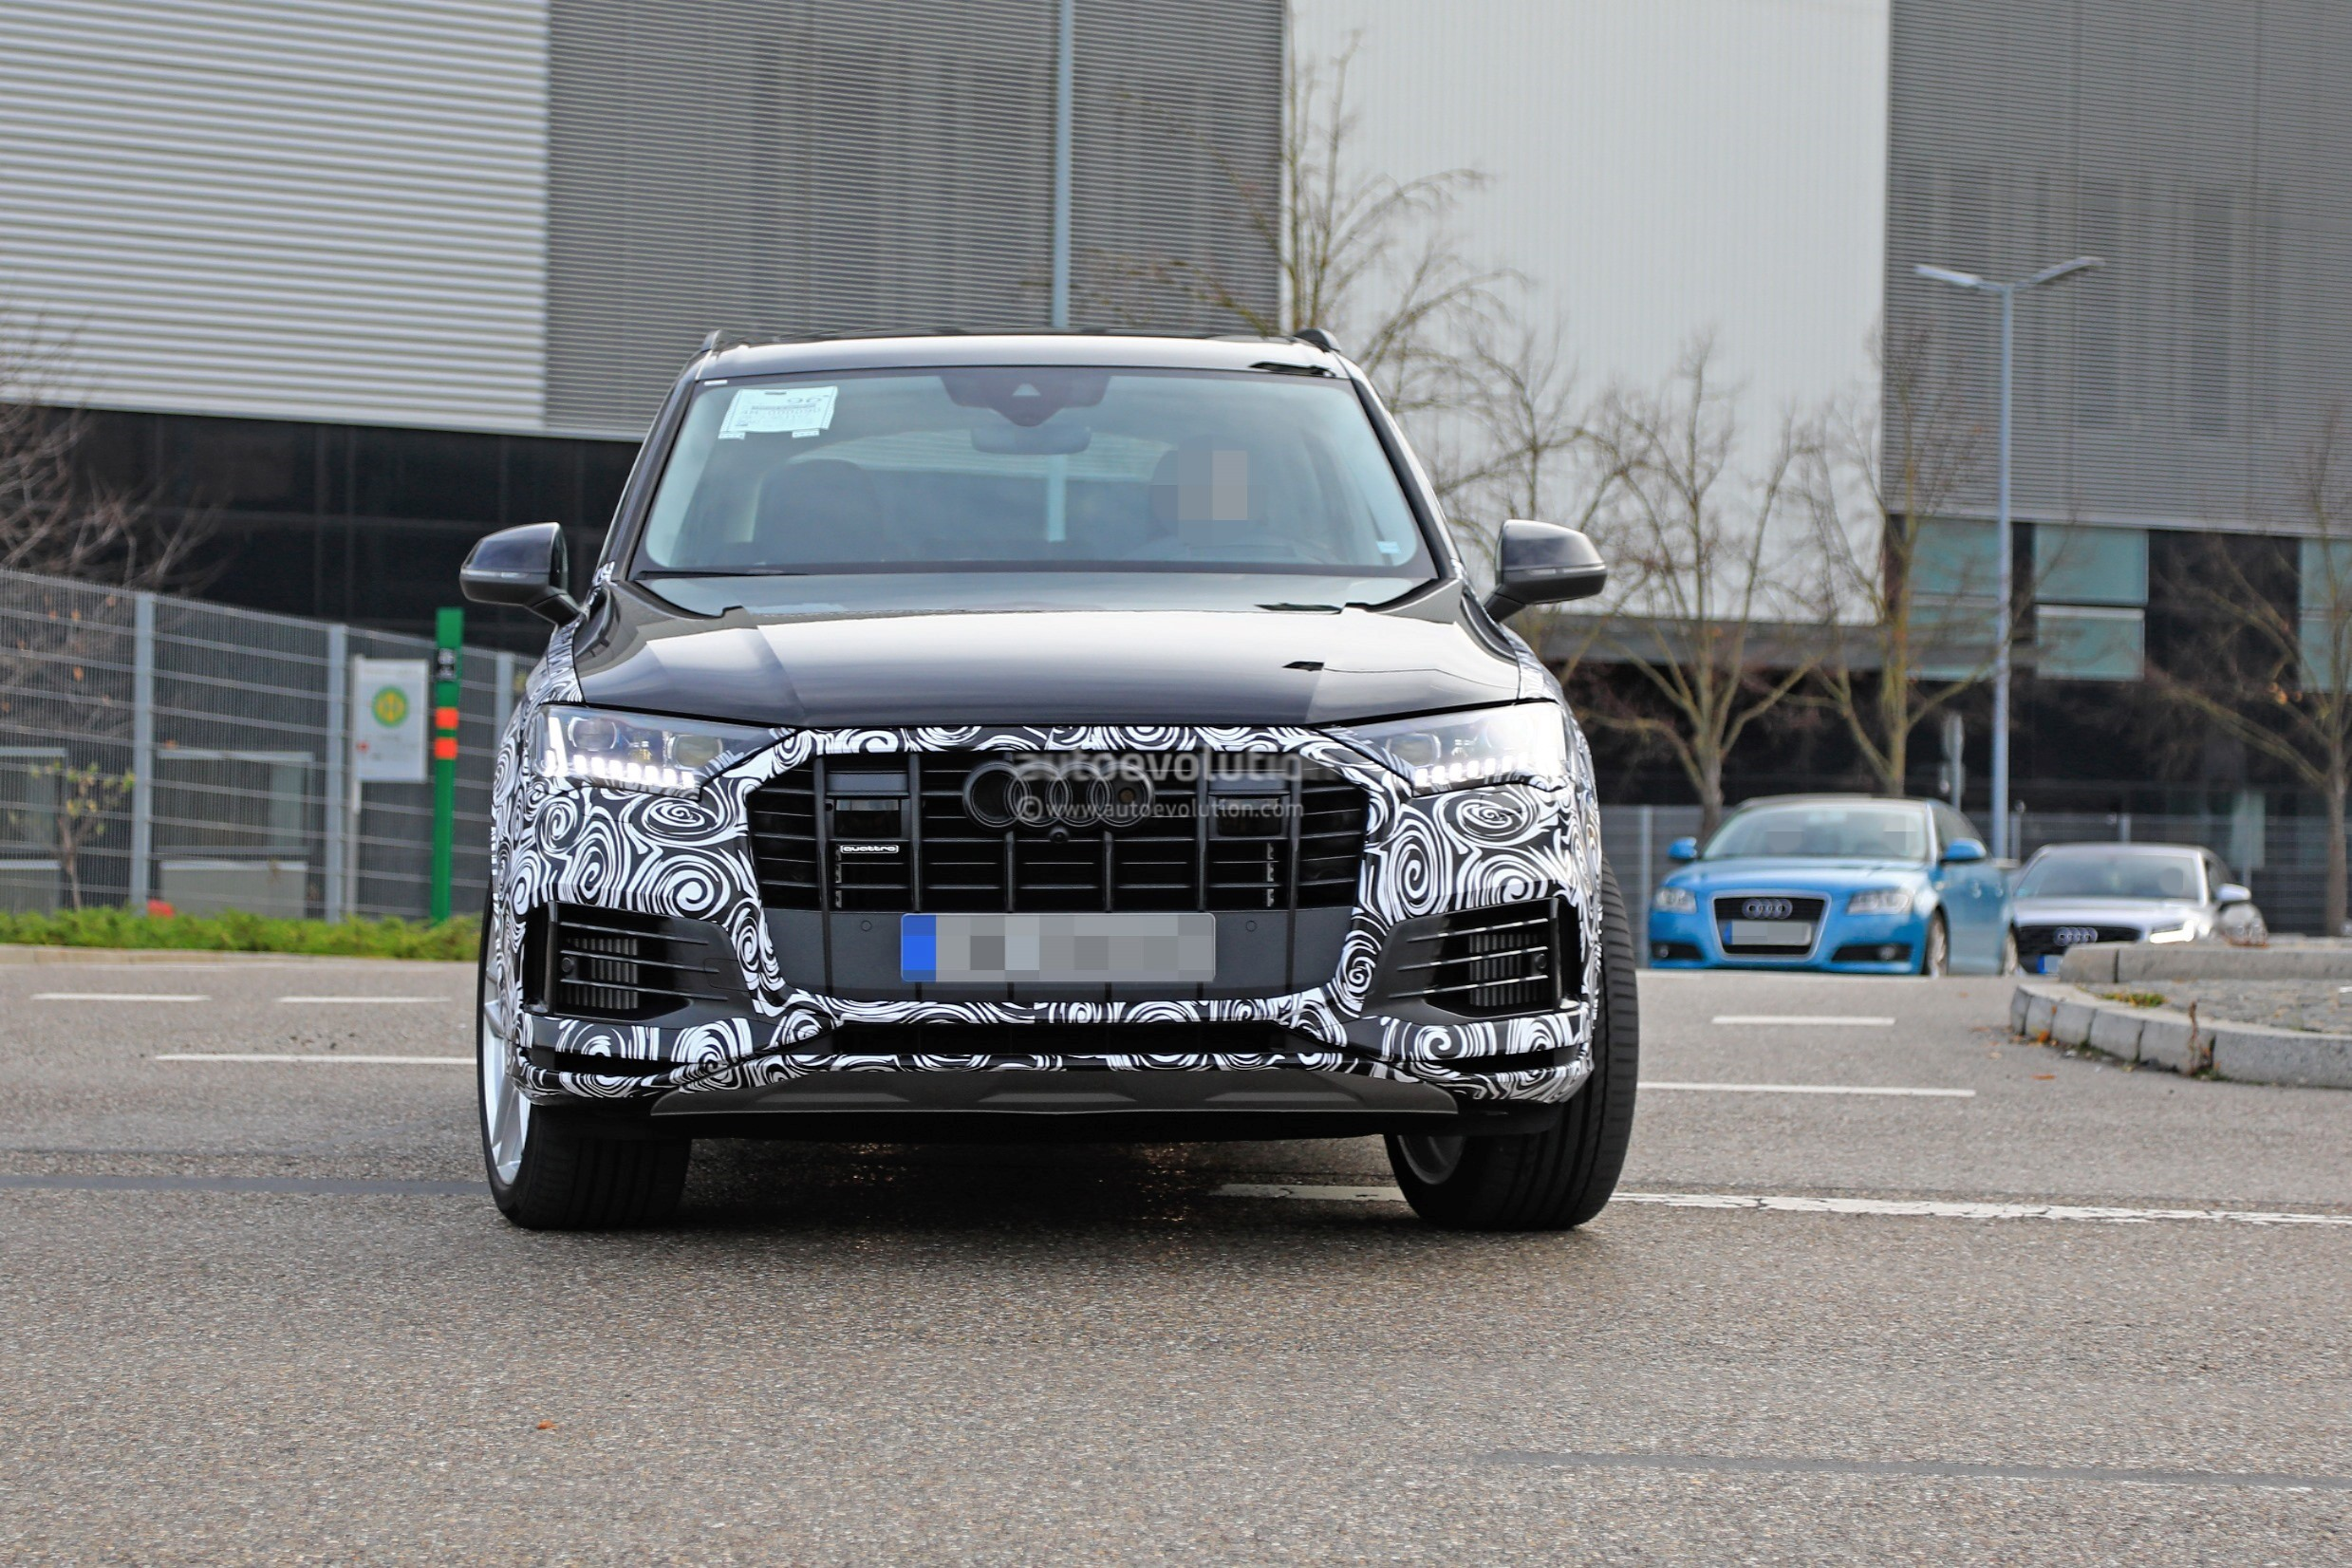 2020 audi q7 facelift spied  features dual-screen infotainment system from q8